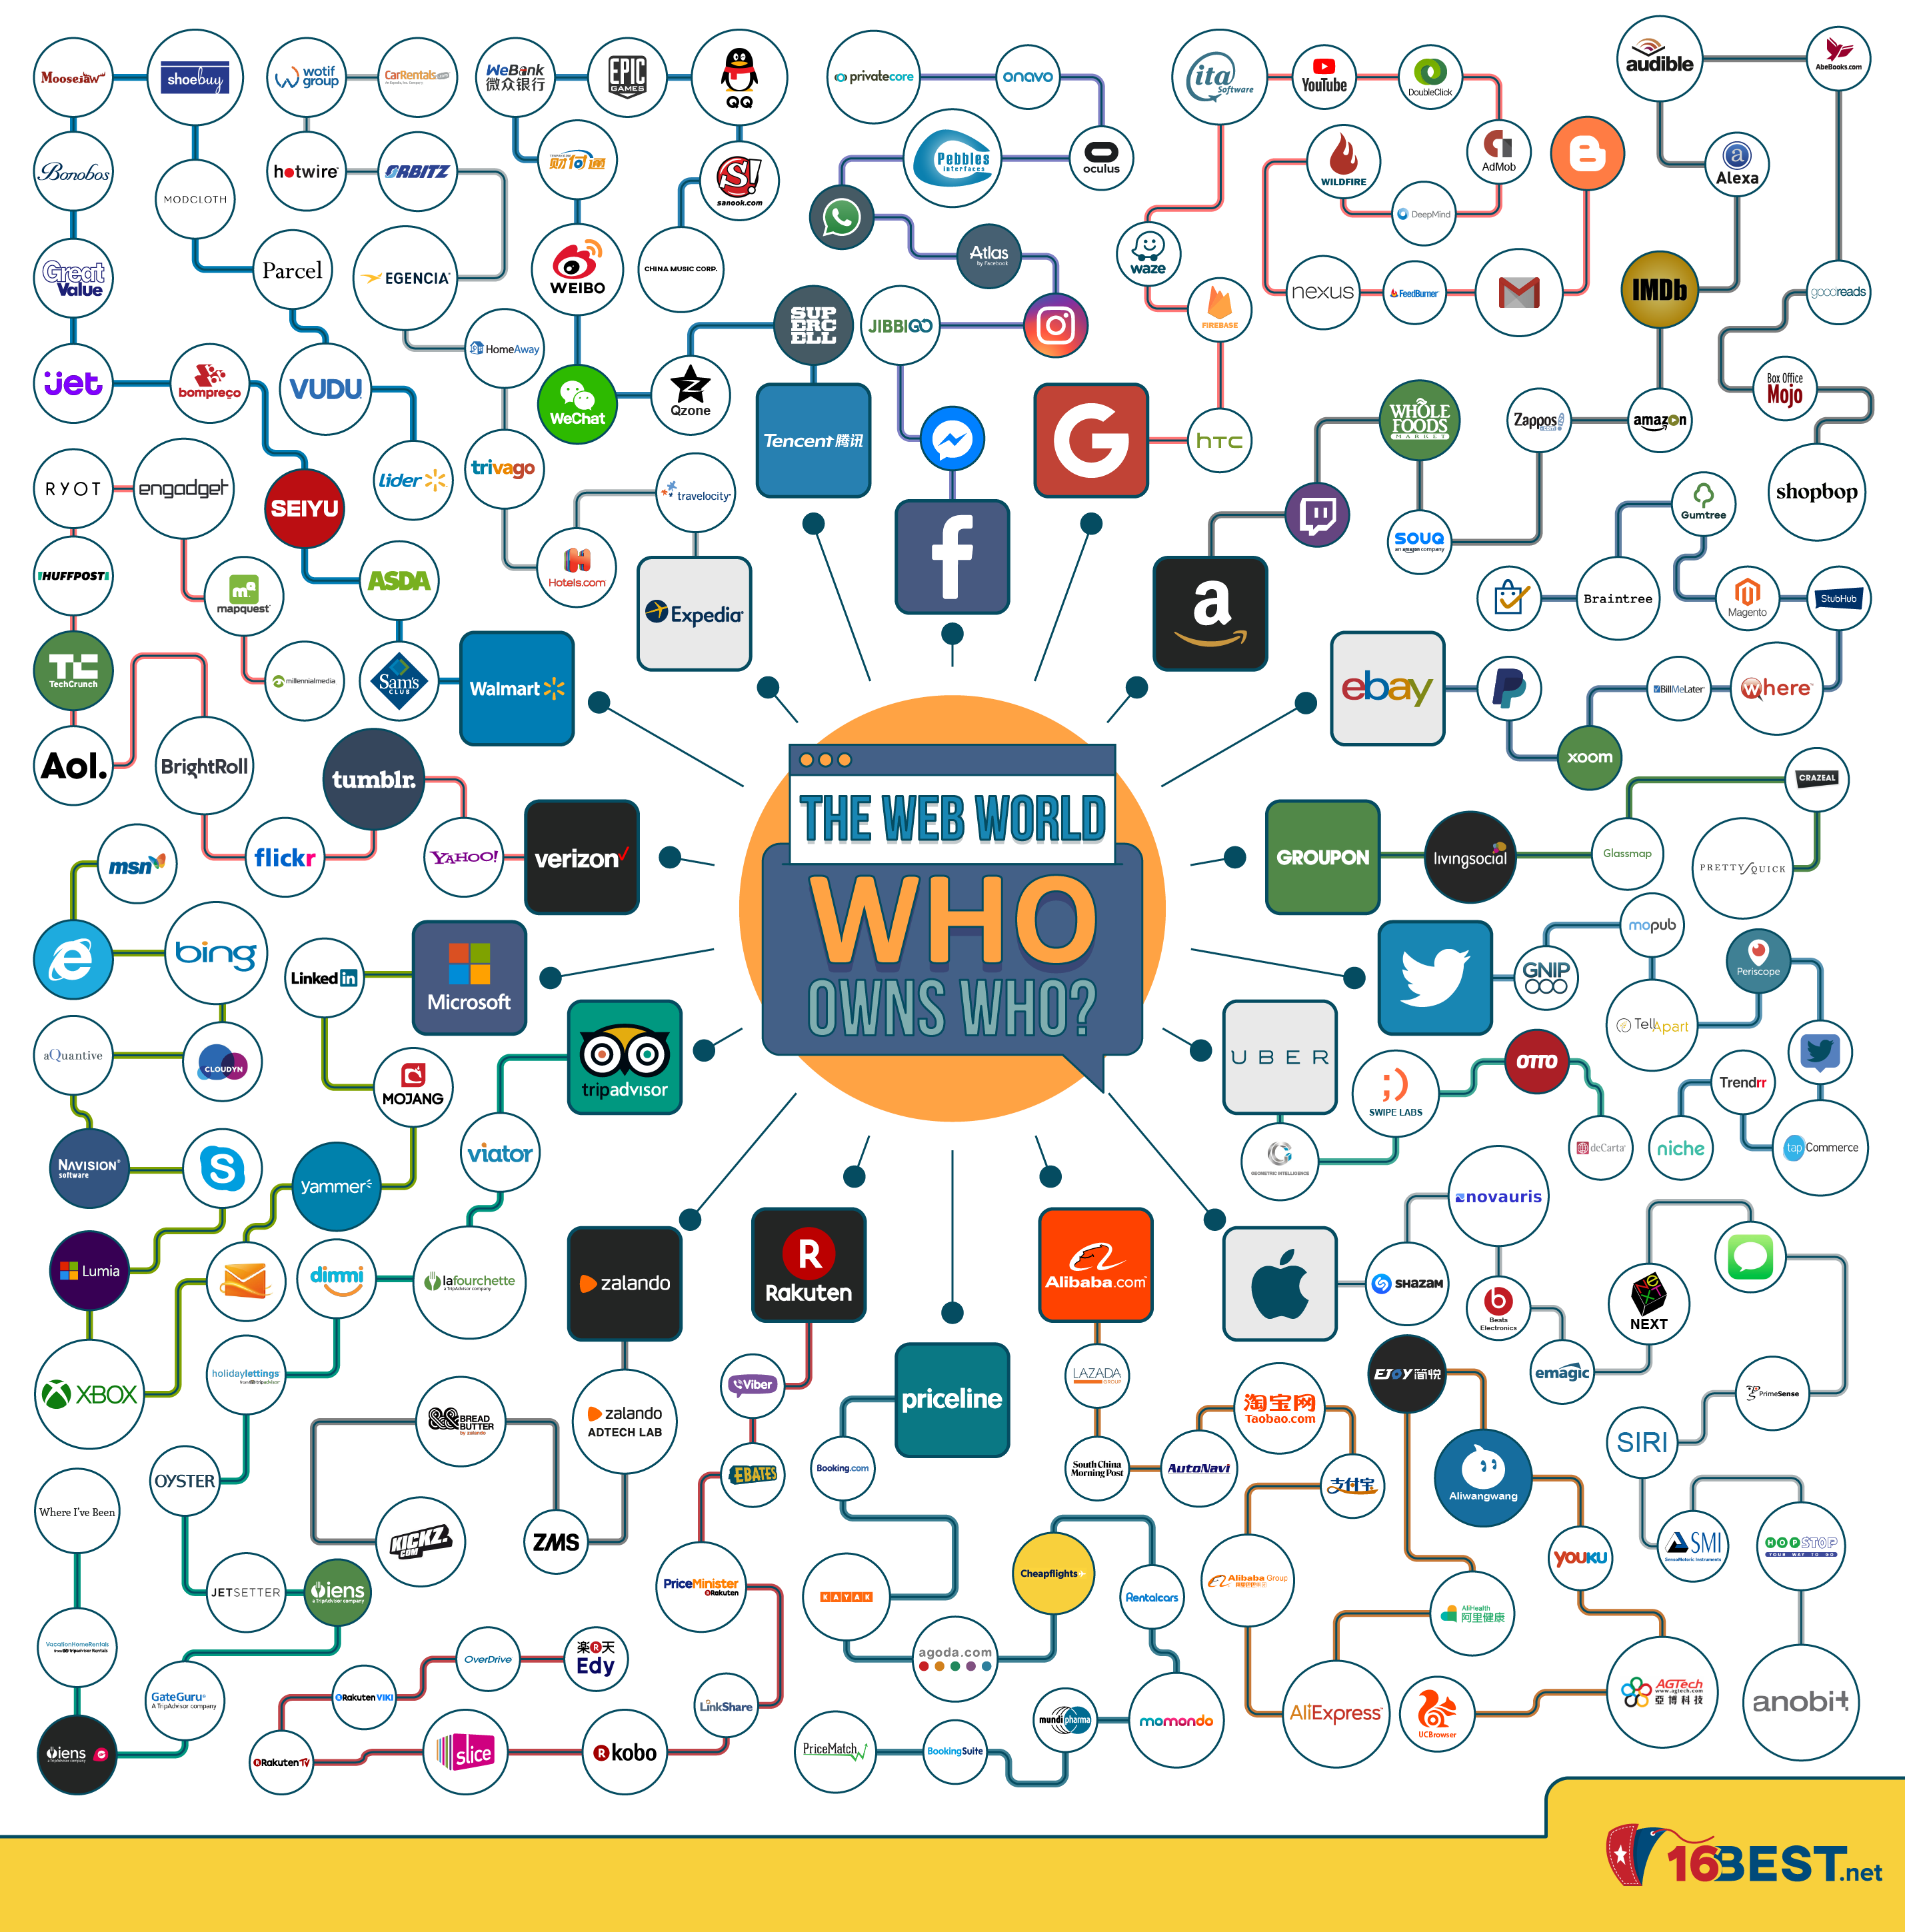 The Web World - Who Owns Who